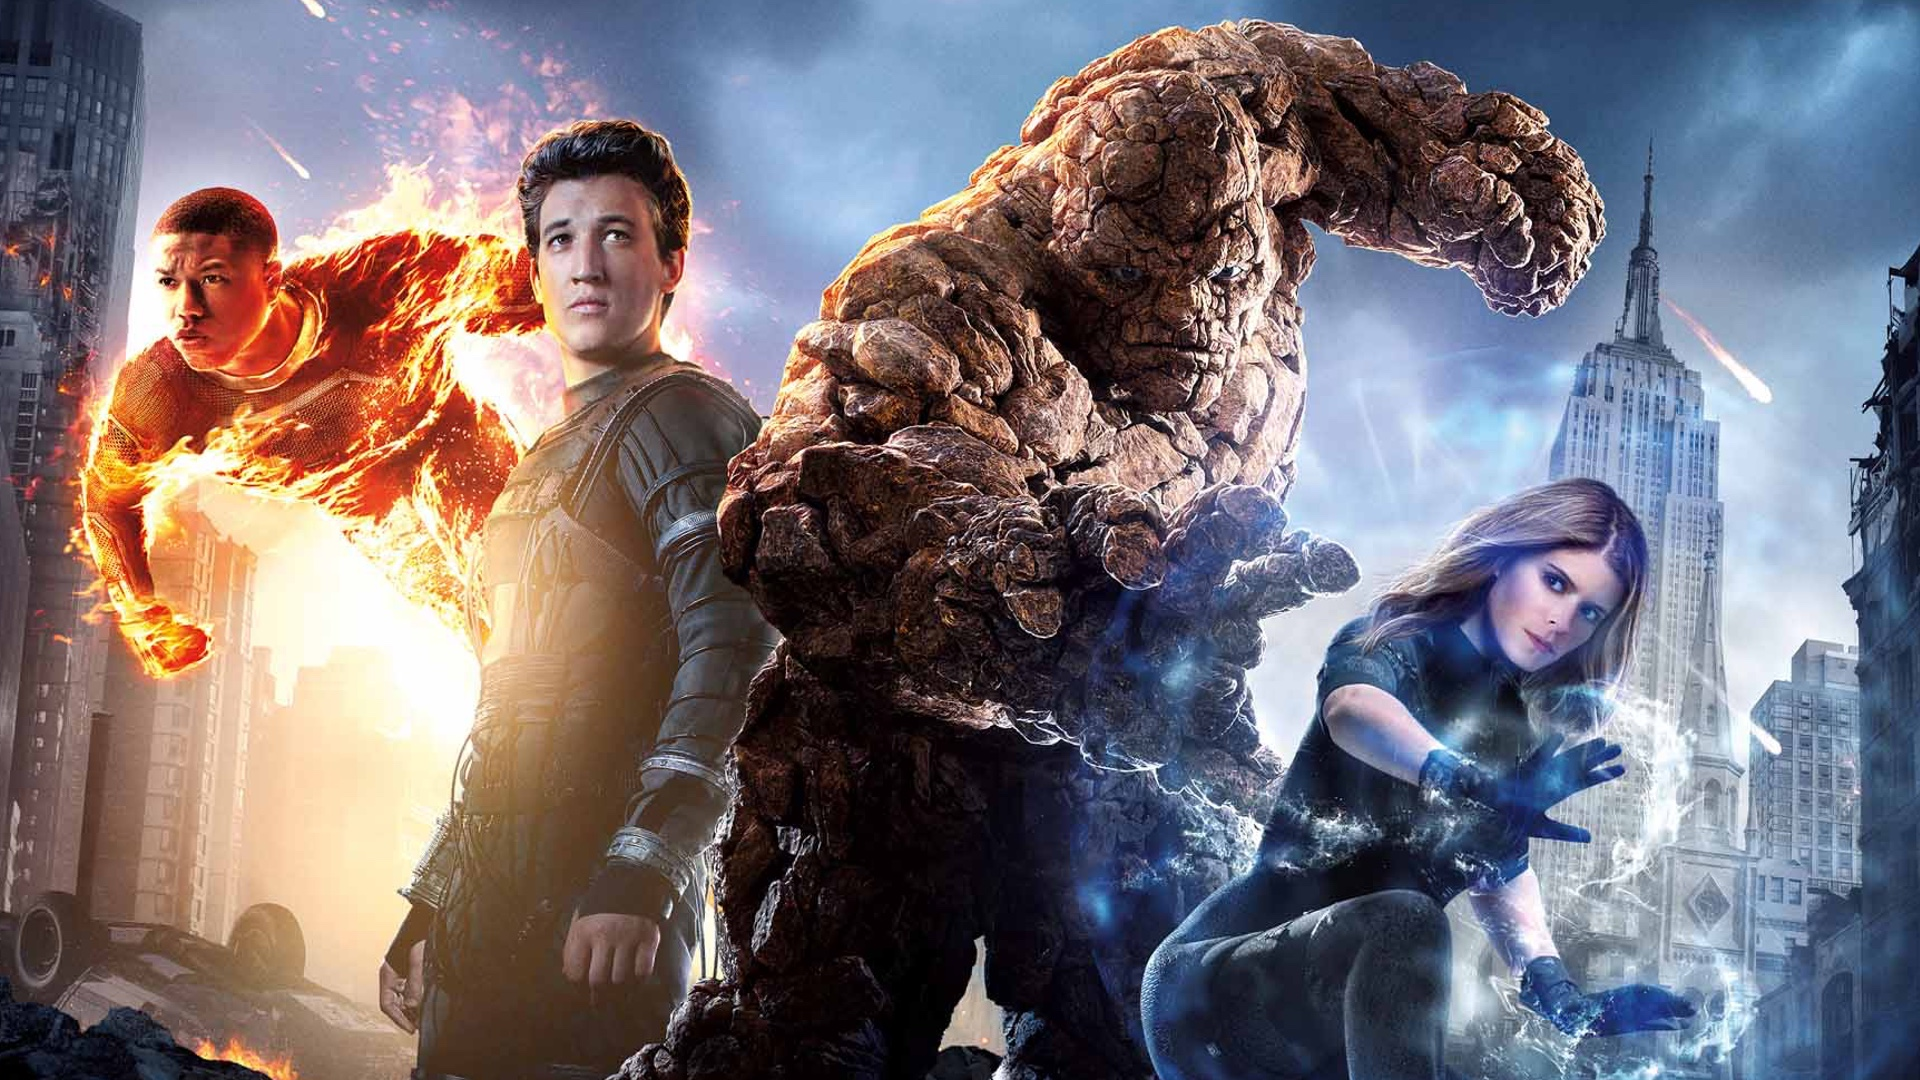 director-tim-miller-wanted-to-include-the-fantastic-four-in-deadpool-2-and-heres-some-concept-art-social.jpg